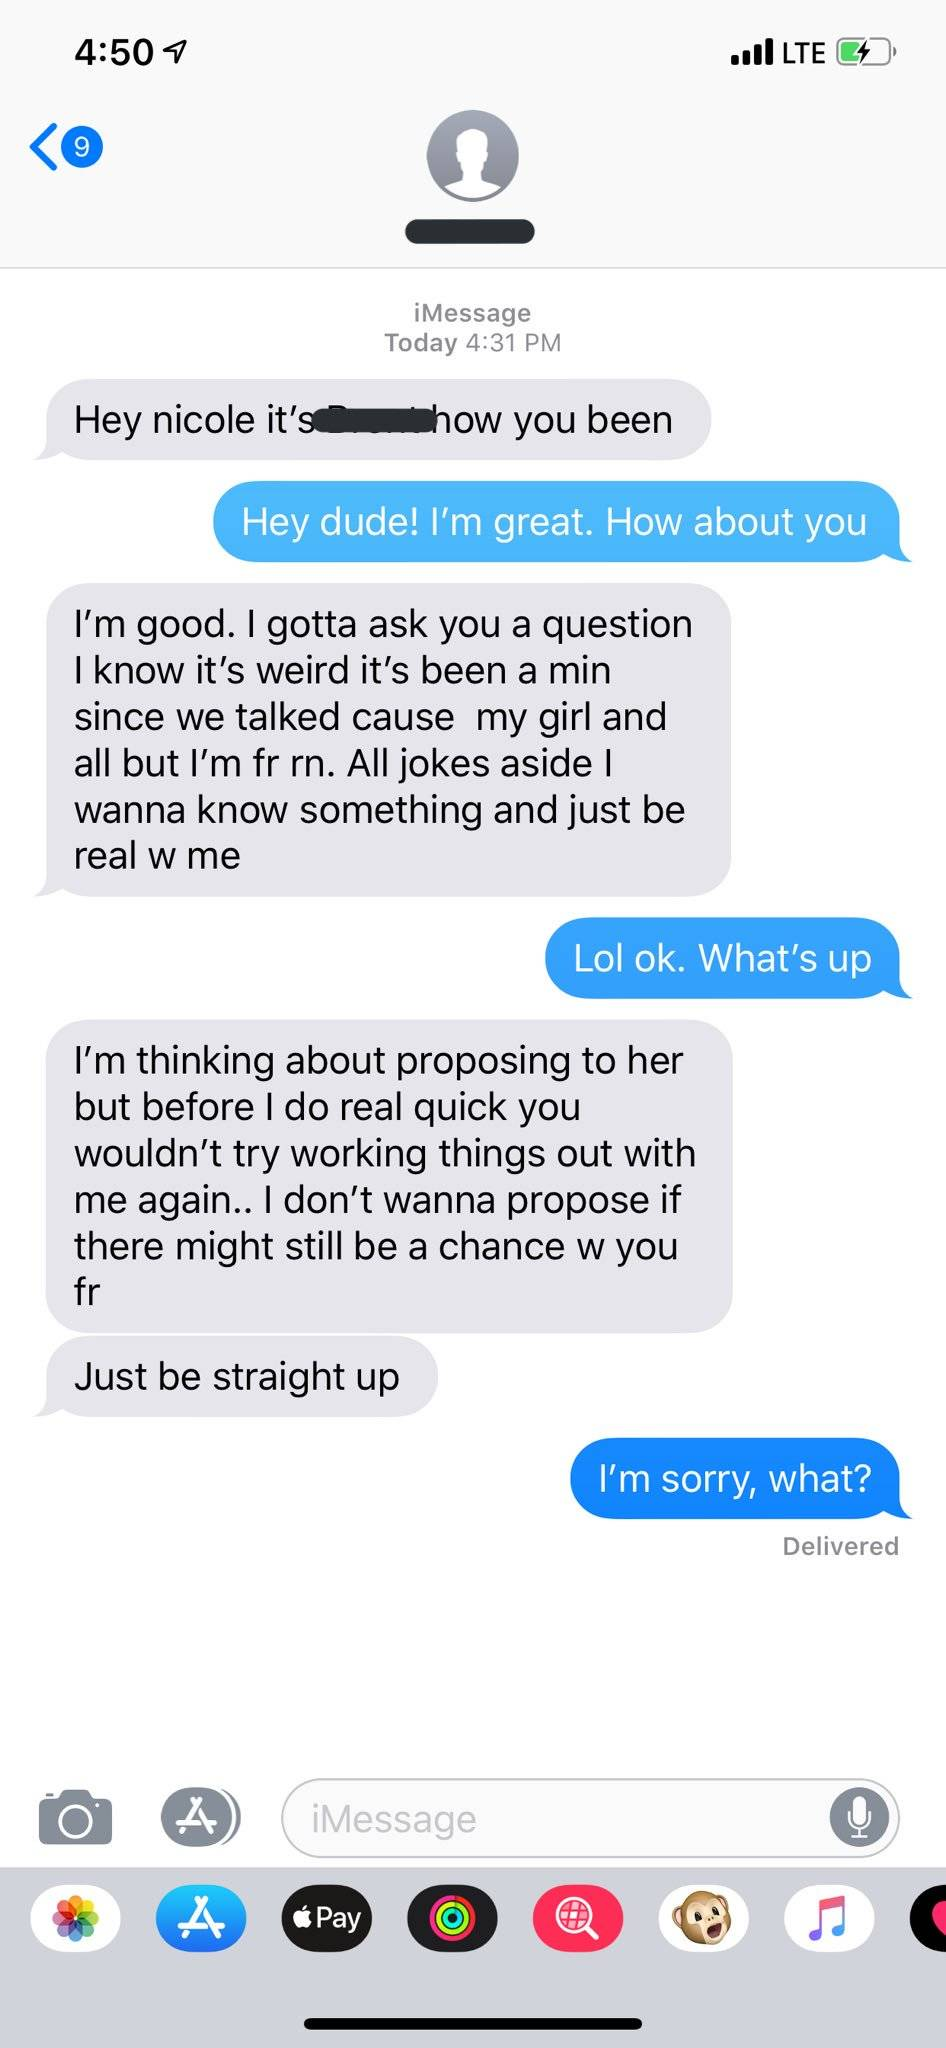 Man reaching out to his ex before proposing to current partner